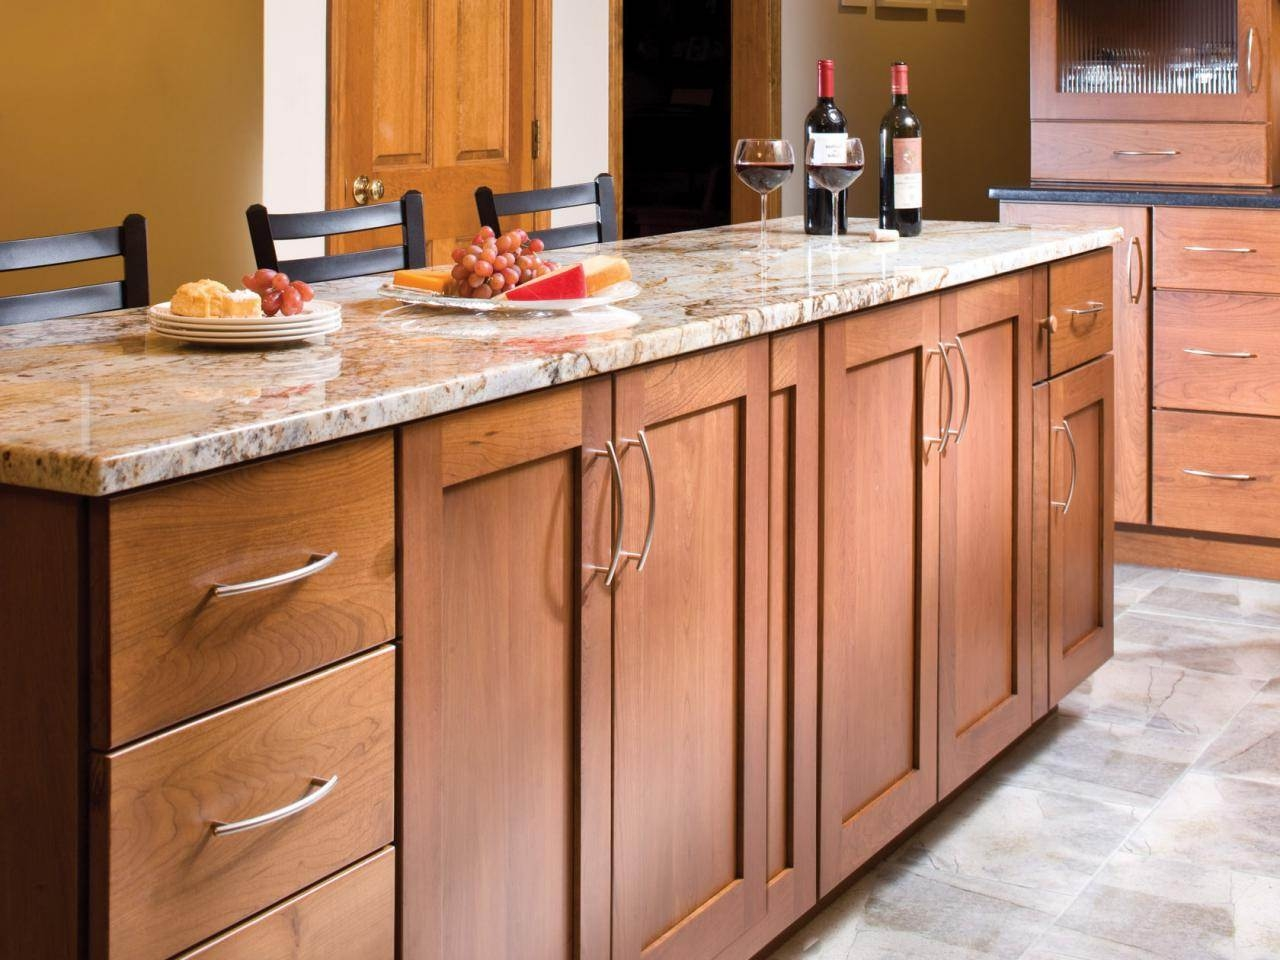 Pictures Of Kitchen Cabinets With Handles